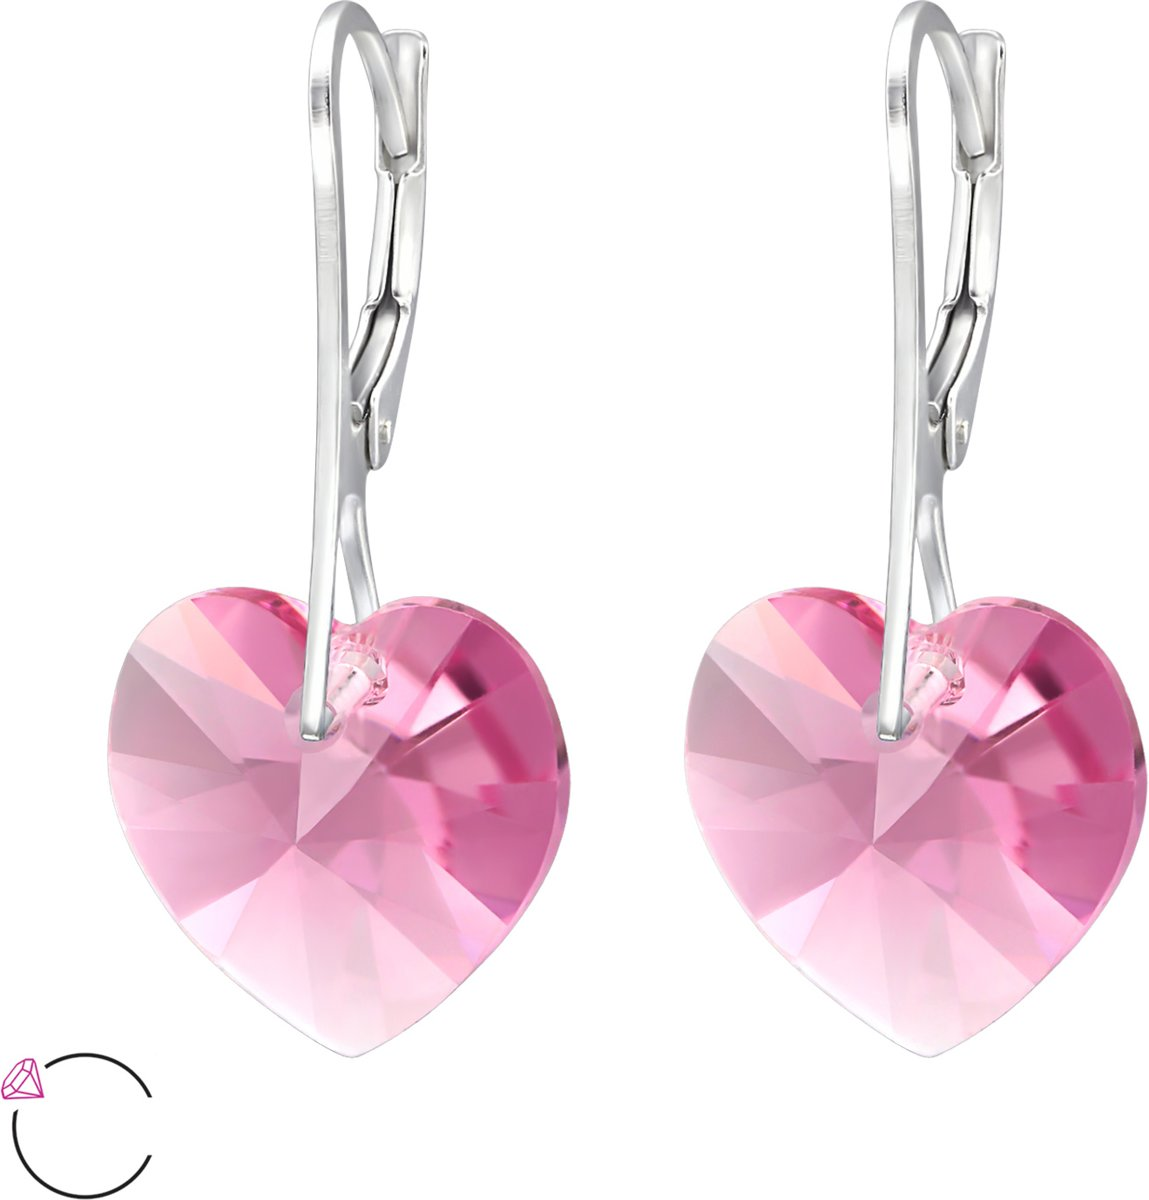 Montebello Oorbellen Edrea Rose - Dames - 925 Zilver - SWAROVSKI ELEMENTS™ - Ø14x30mm kopen